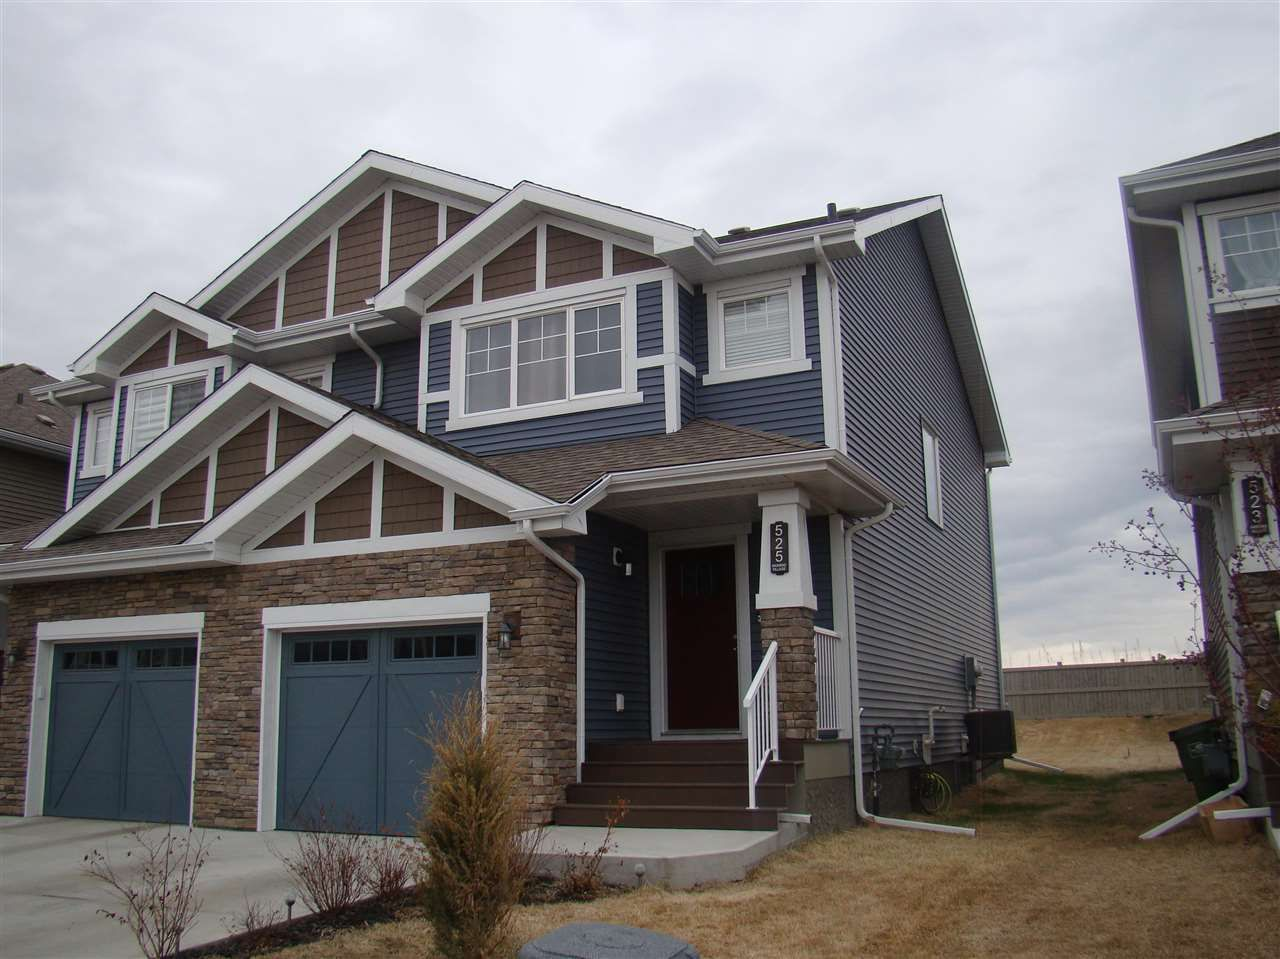 Main Photo: 525 EBBERS Way in Edmonton: Zone 02 House Half Duplex for sale : MLS®# E4241528